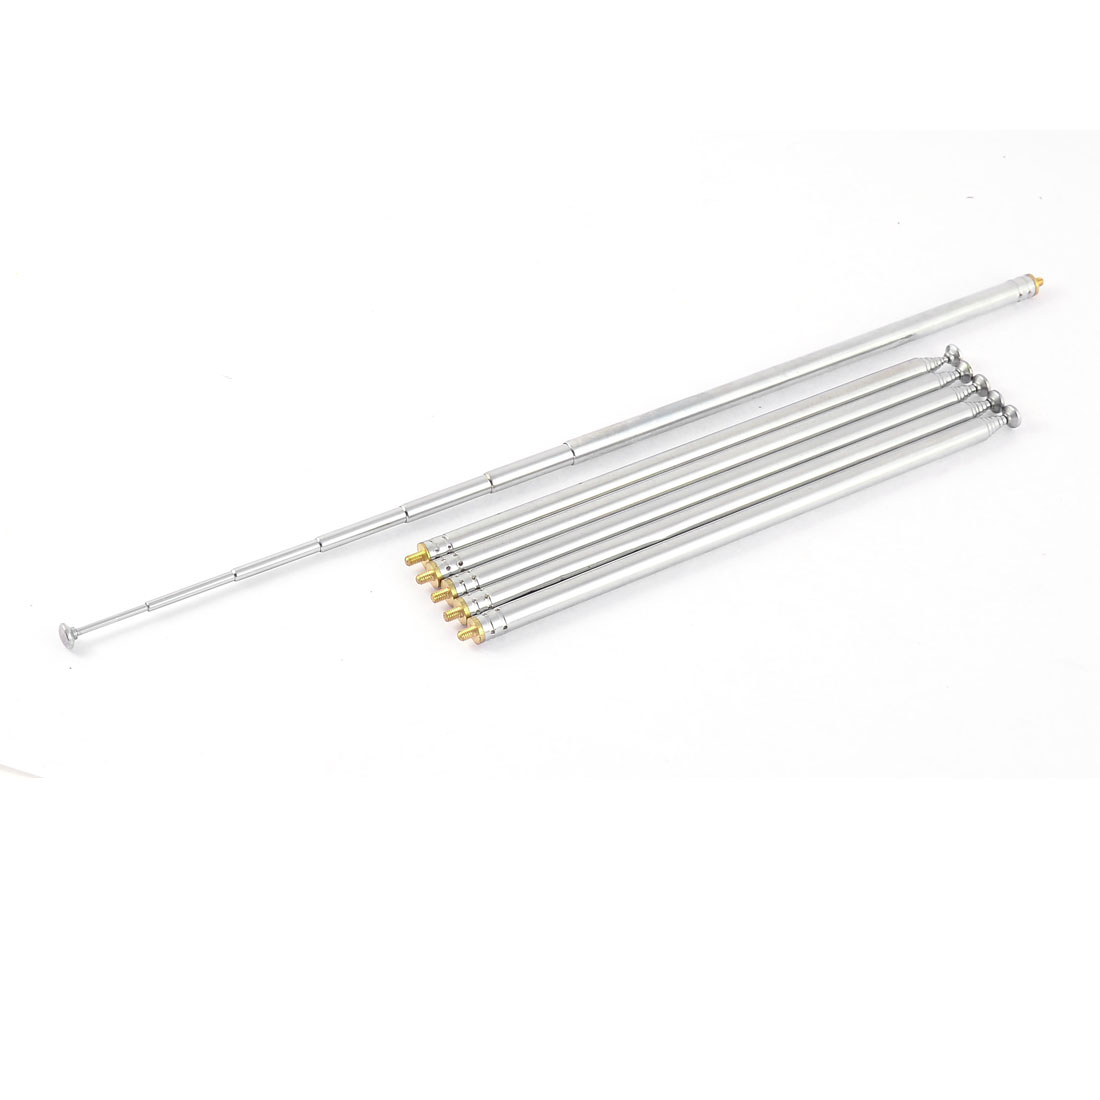 "97cm 38"" Long 3mm Male Thread Dia Metal Rod Telescopic 7 Sections TV Radio Controller Antenna Remote Aerial"